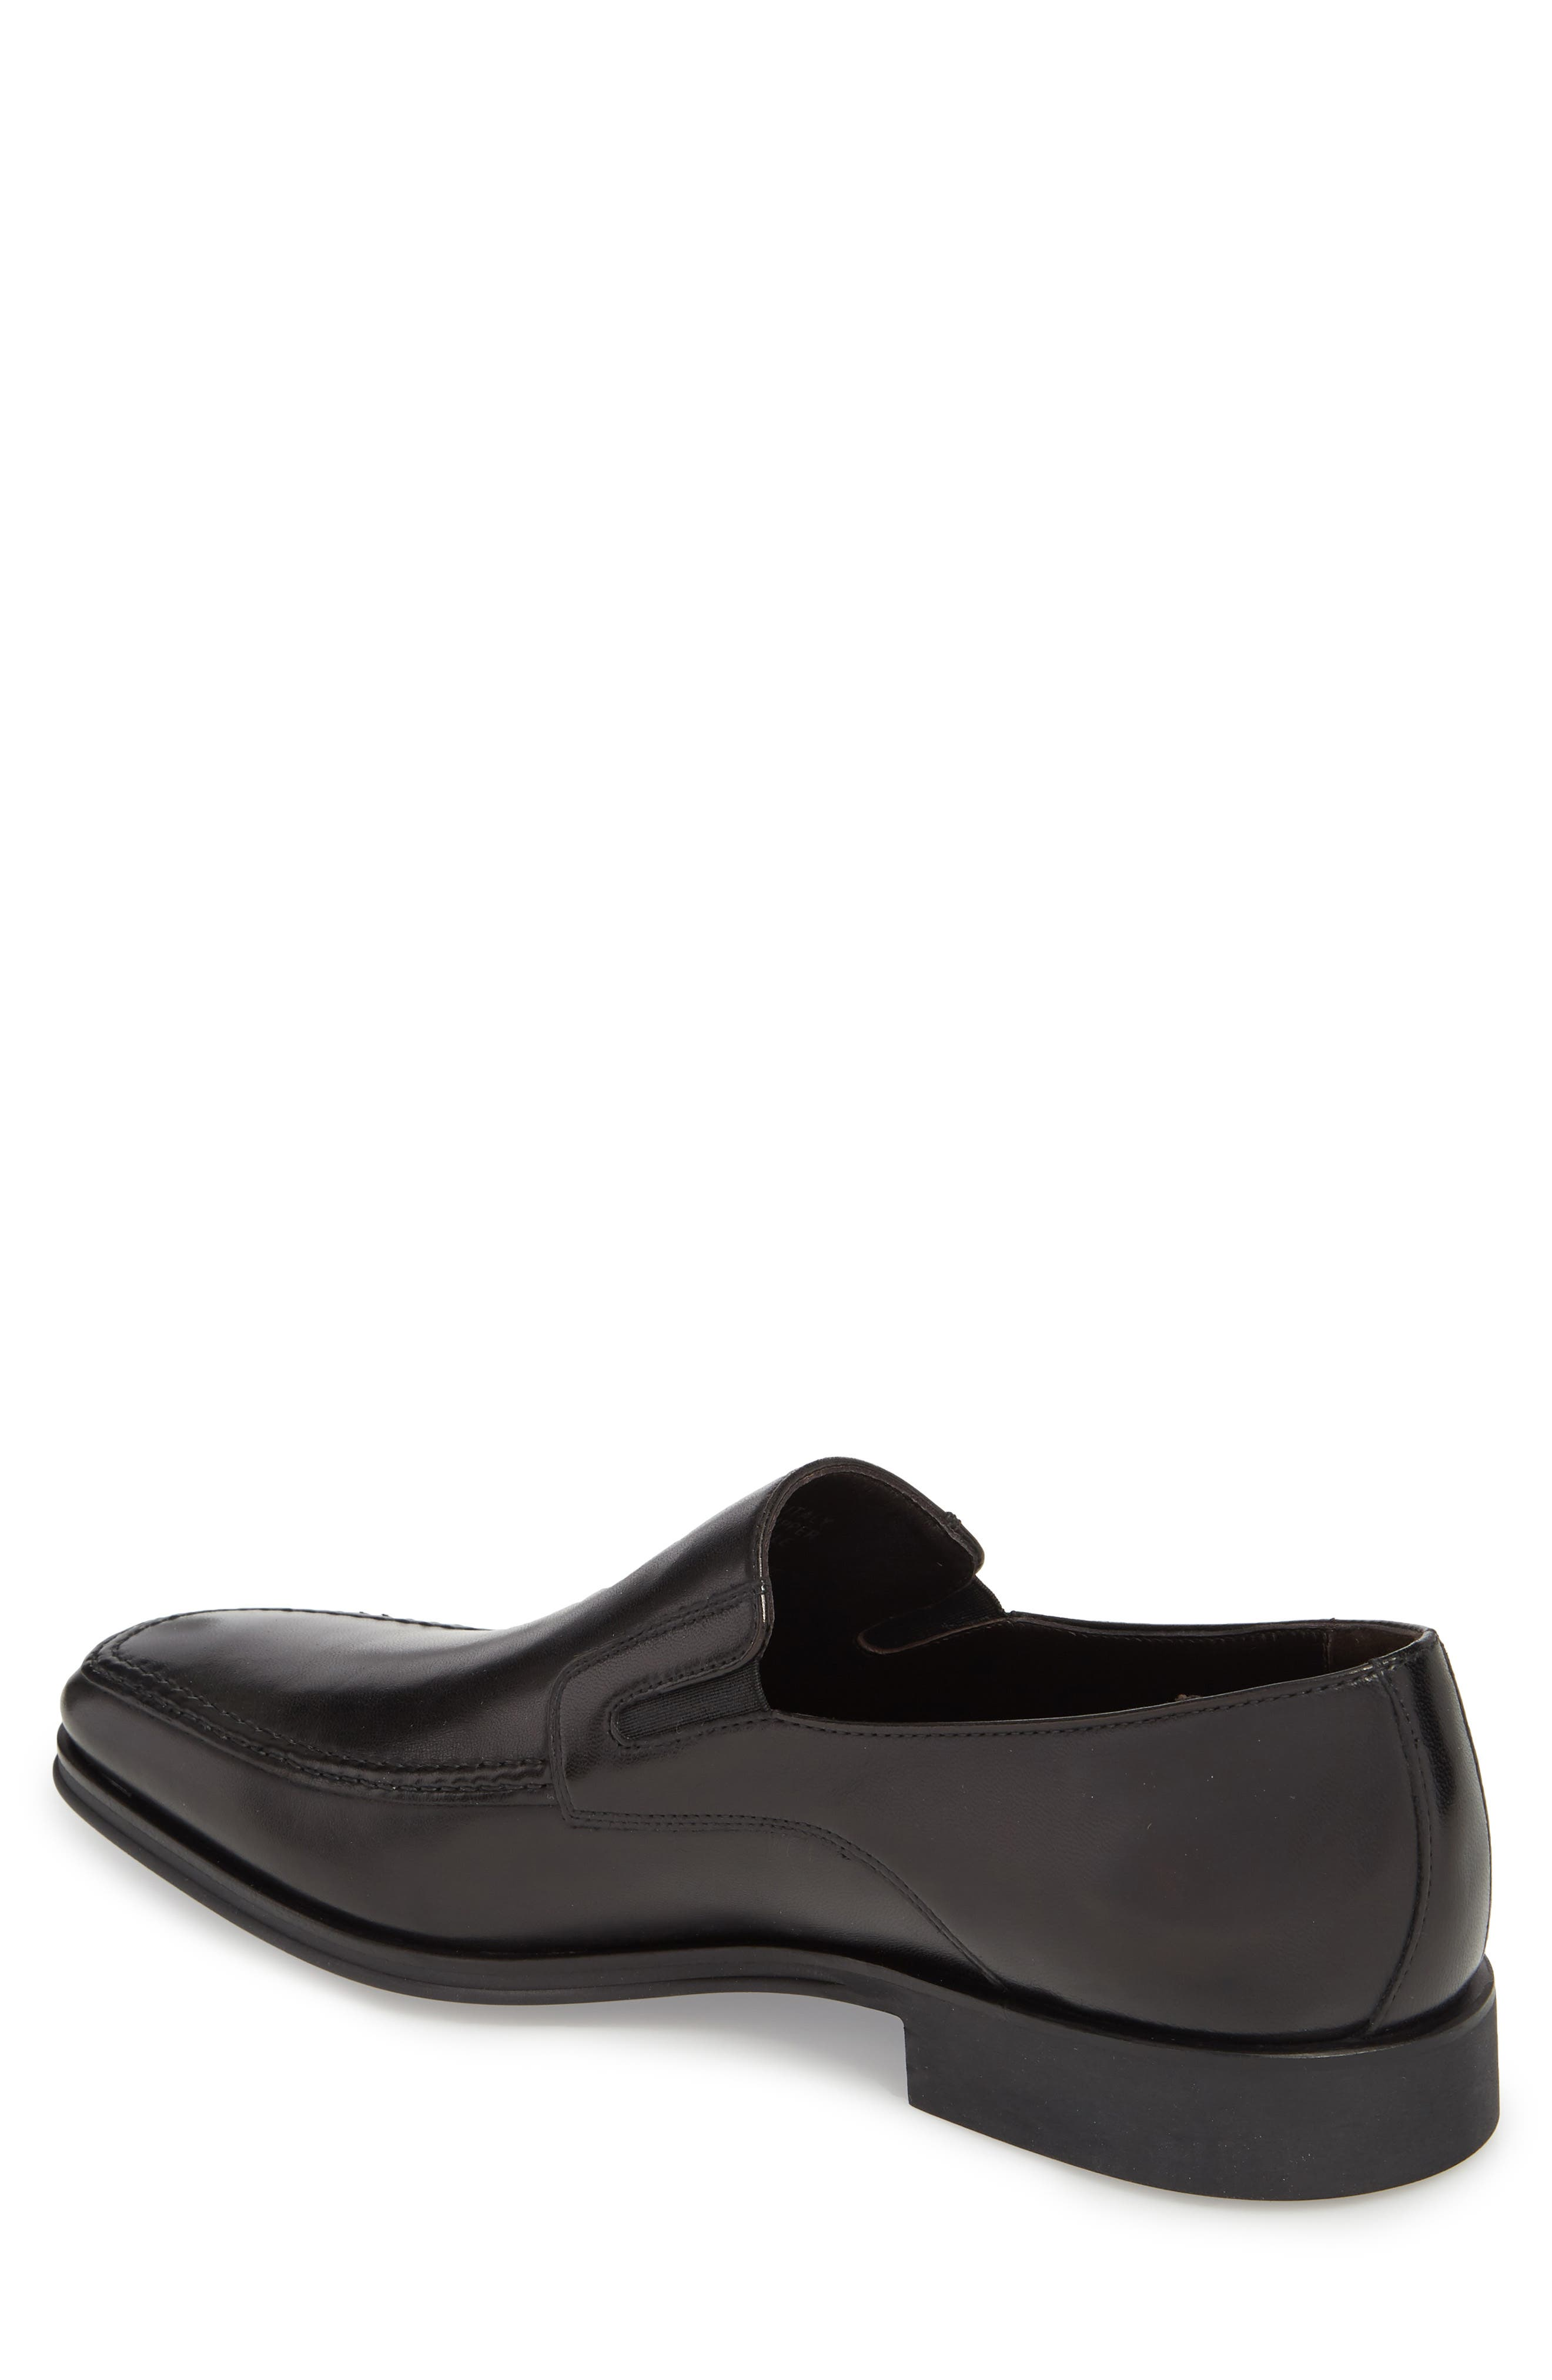 MONTE ROSSO, Lucca Nappa Leather Loafer, Alternate thumbnail 2, color, BLACK